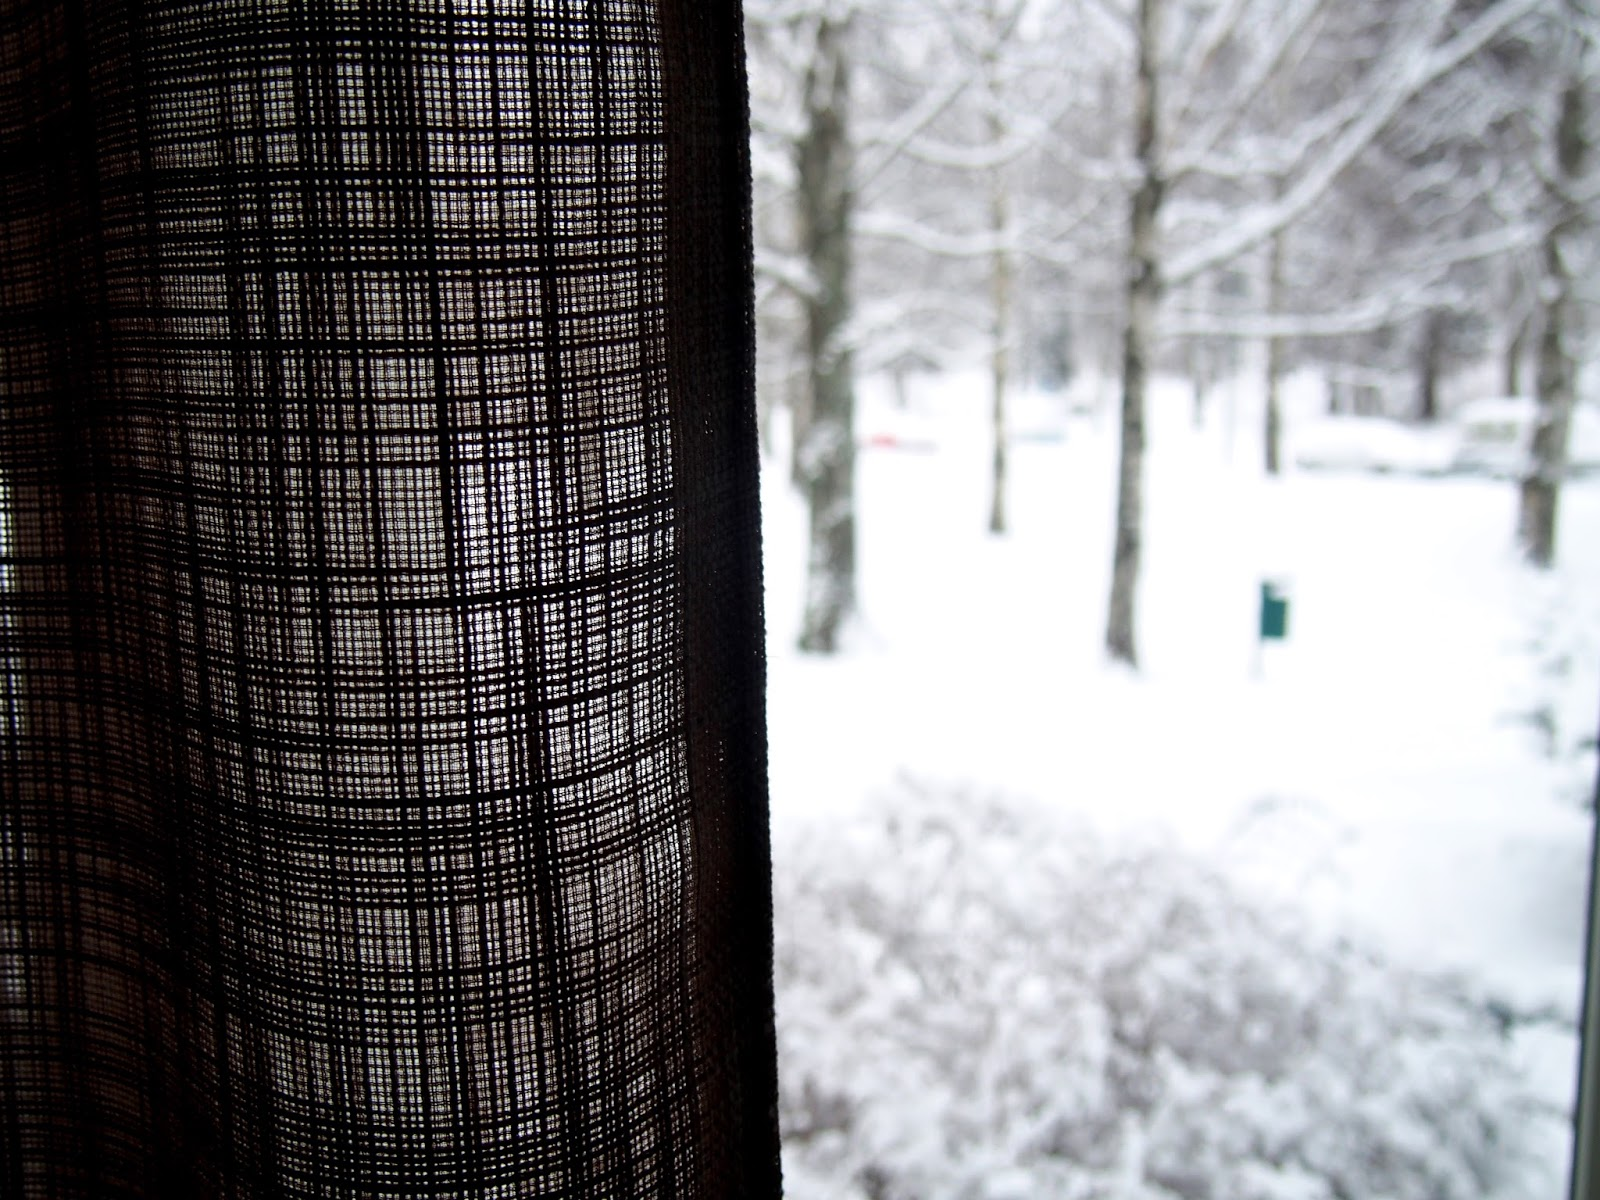 snow outside curtains window ikkuna lumi ulkona verho kajo valo